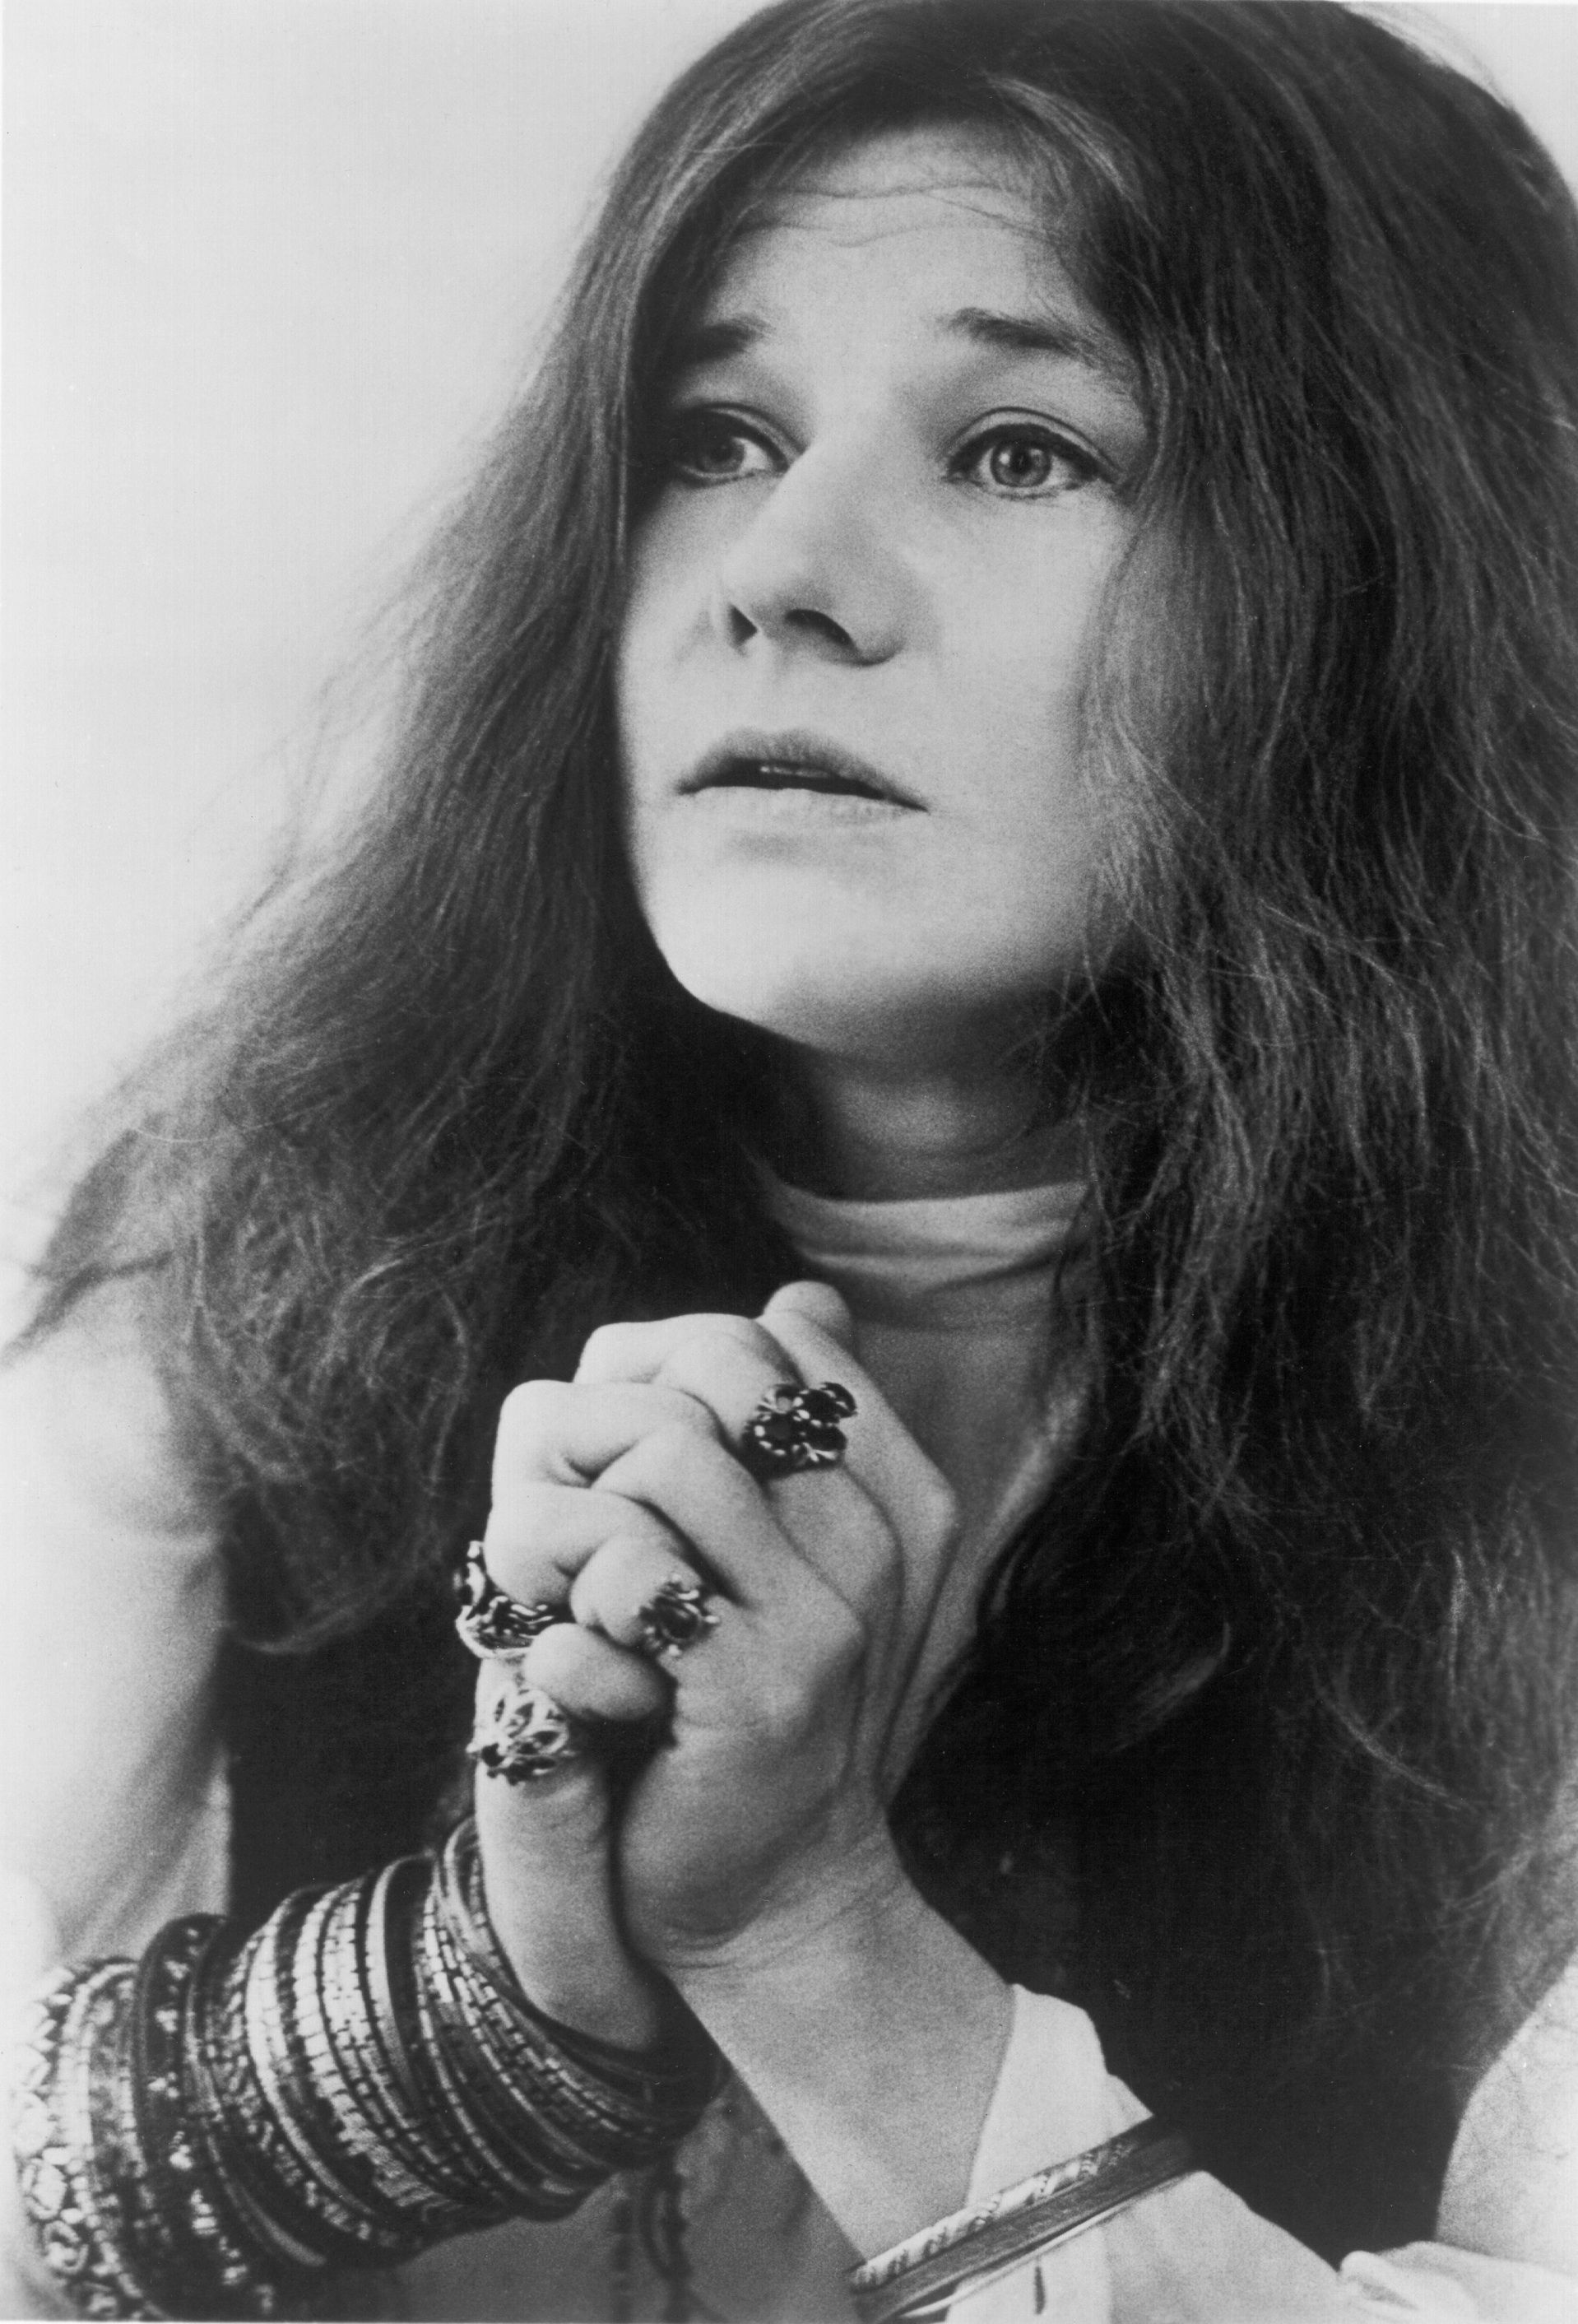 ~Janis Joplin's Greatest Hits is a 1973 collection of hit songs by American singer-songwriter Janis Joplin, who died in 1970.